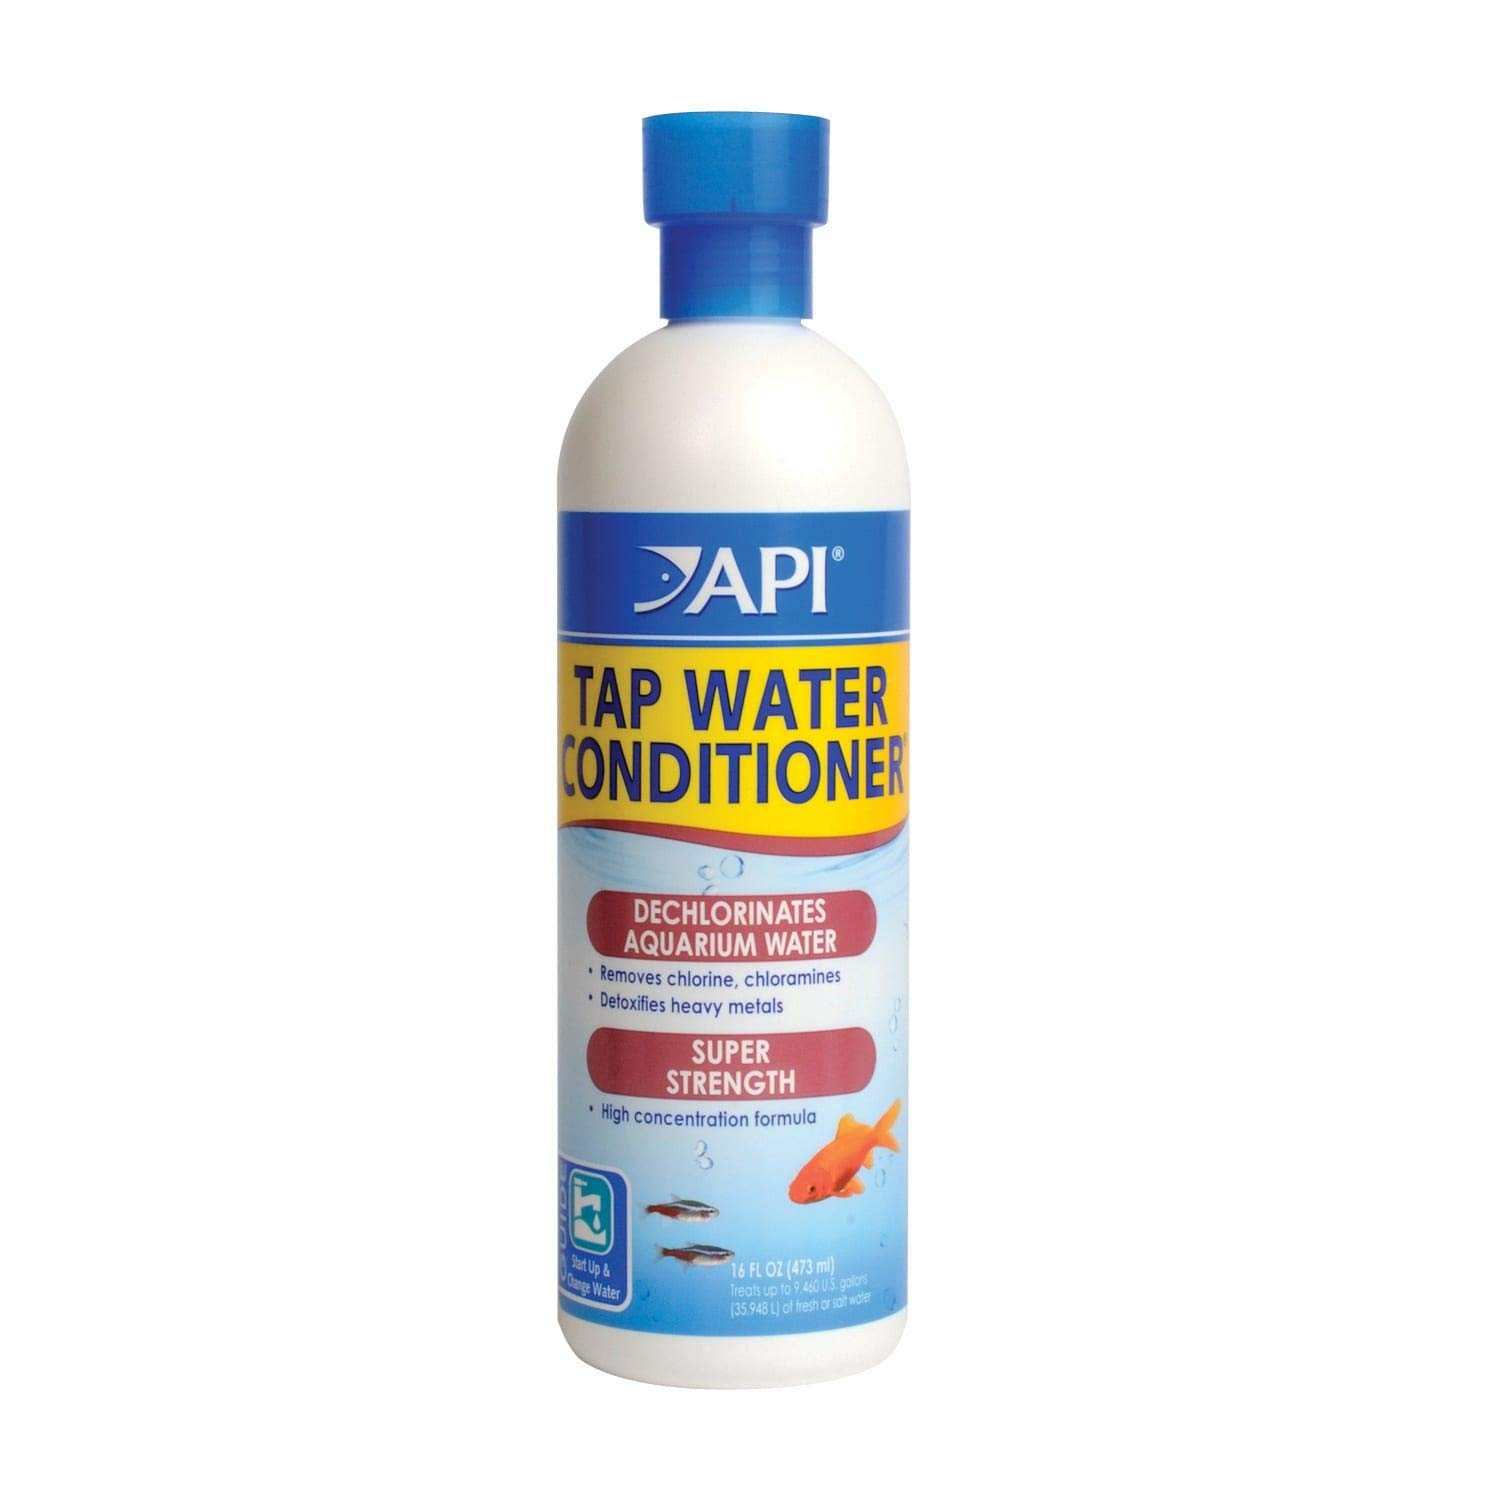 API TAP Water Conditioner, Instantly neutralizes Chlorine, chloramines and Other Chemicals to Make tap Water Safe for…